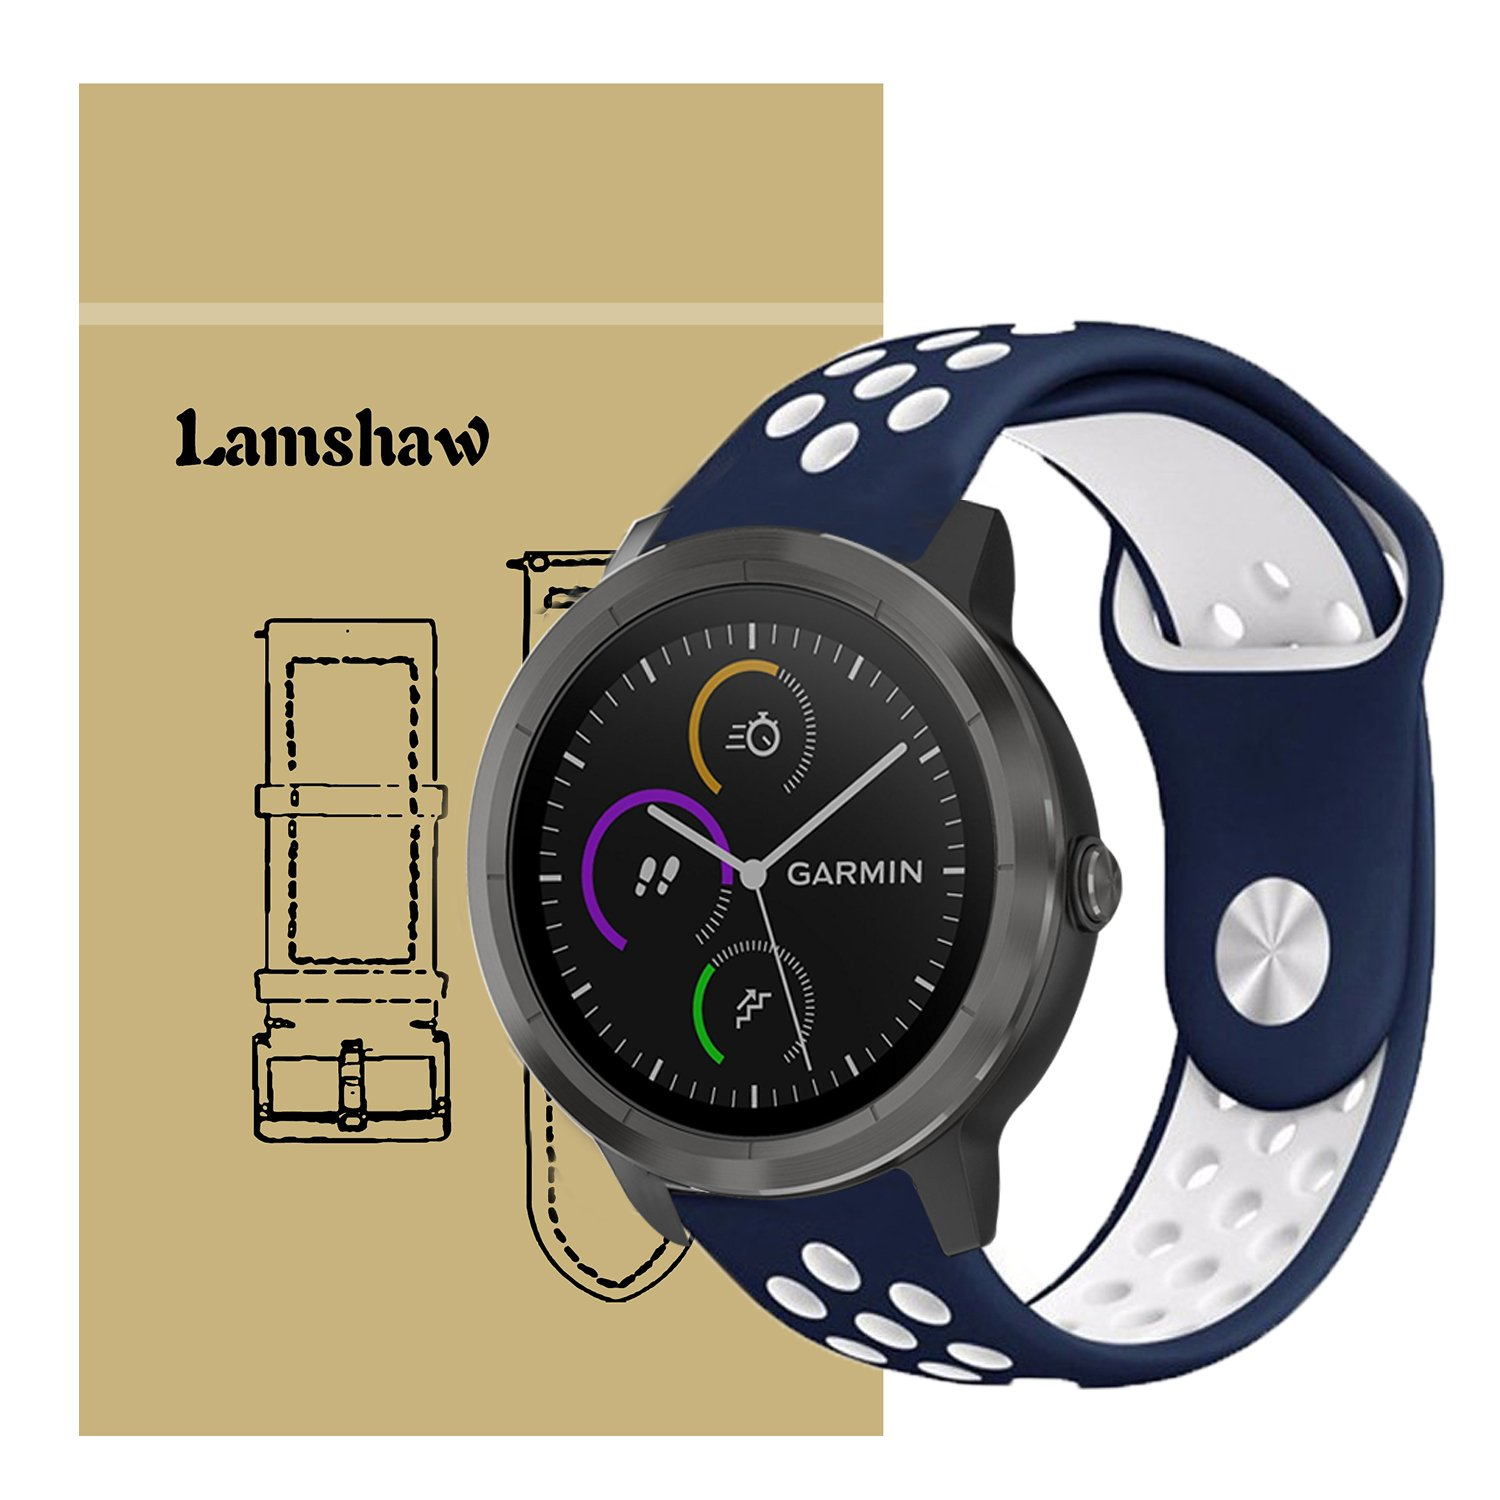 Lamshaw Smartwatch Bands for Garmin Vivomove HR,Sport Silicone Replacement Strap for Garmin Vivomove HR/Garmin Vivoactive 3 Band (Blue+White)